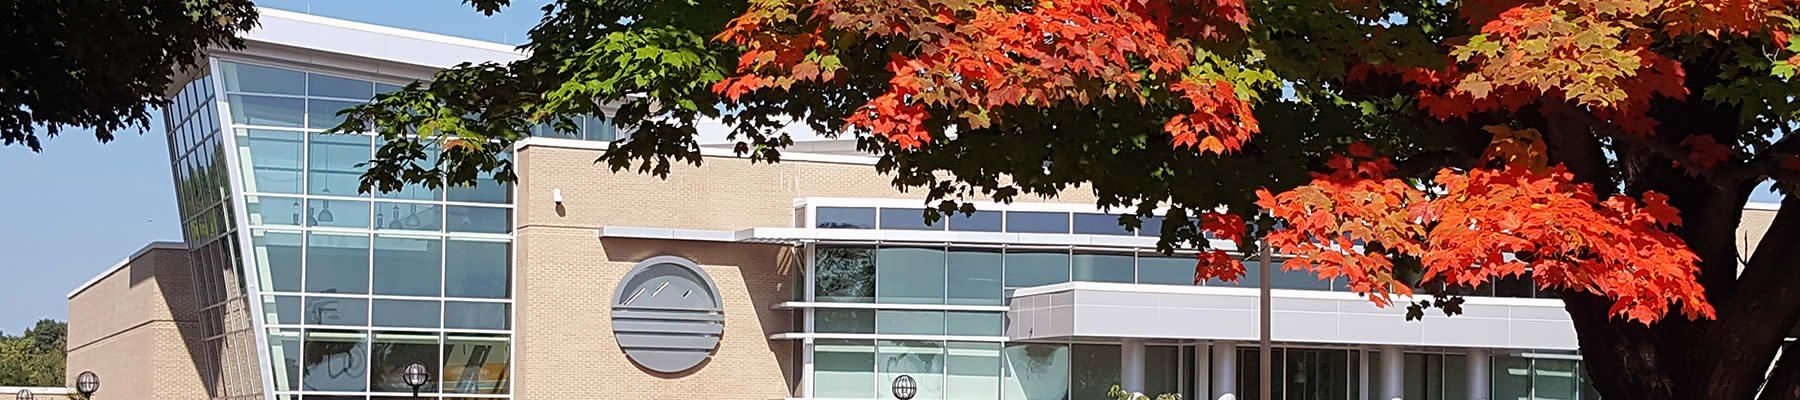 Maples start to show their Fall colors in front of the Rec Center